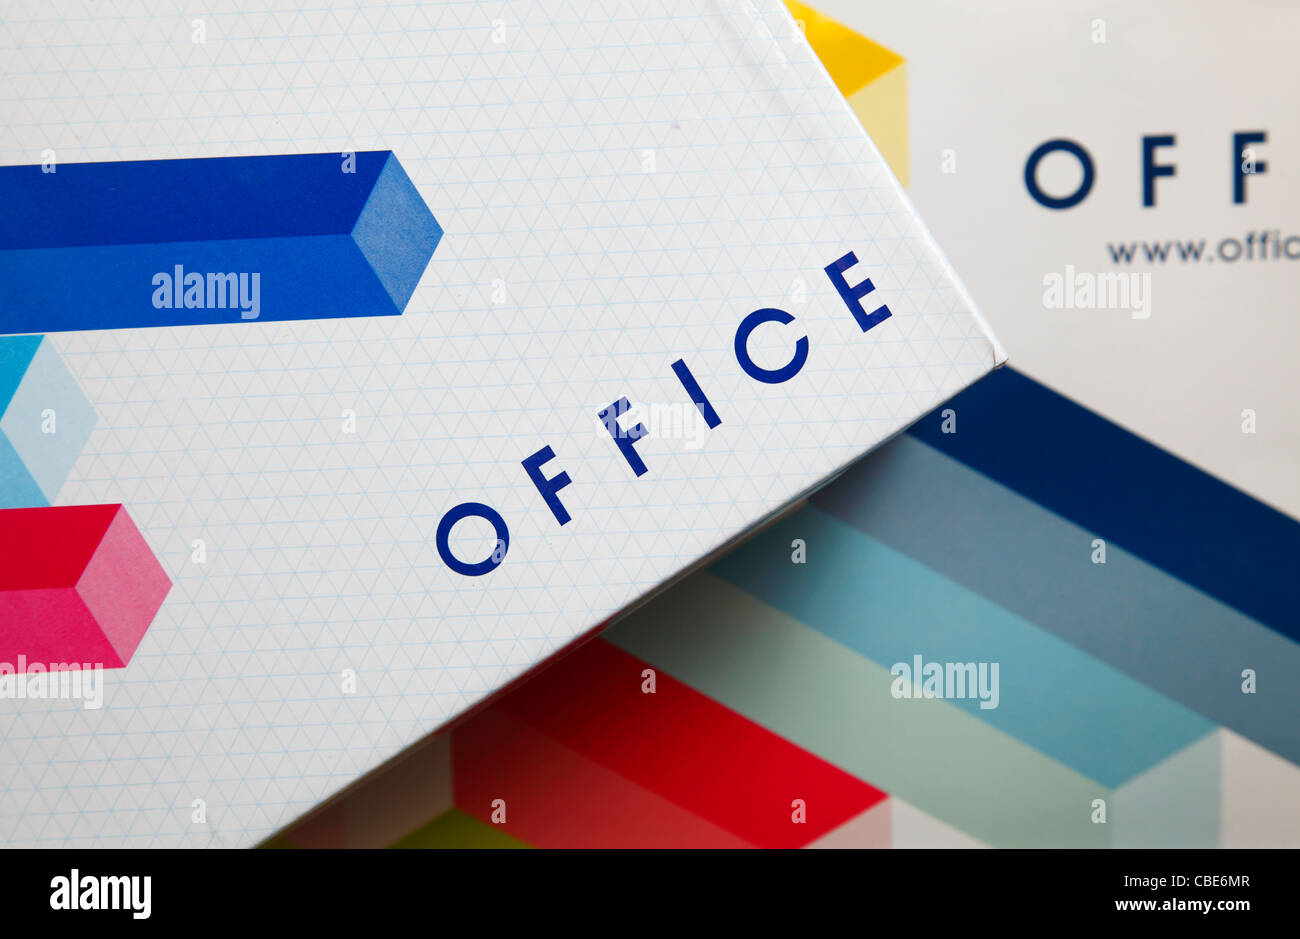 Office shoe shop packaging. - Stock Image